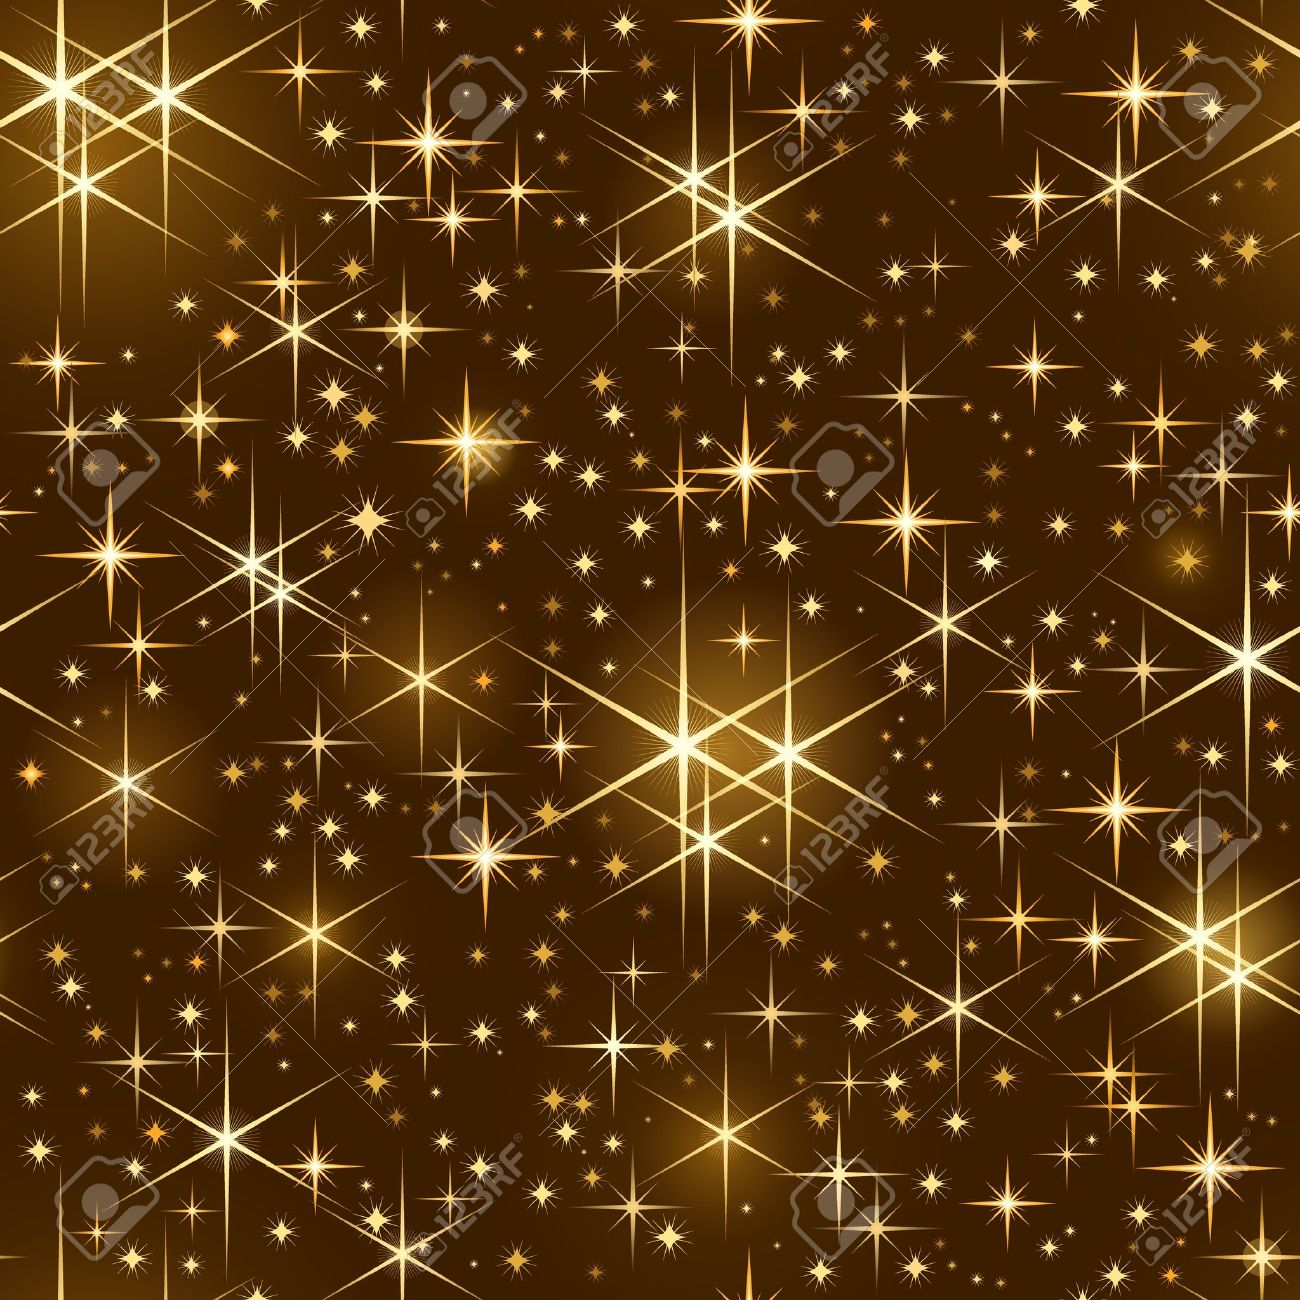 Background image o linear gradient - Seamlessly Tiling Pattern Of Golden Shiny Stars On Dark Background Use Of Linear And Radial